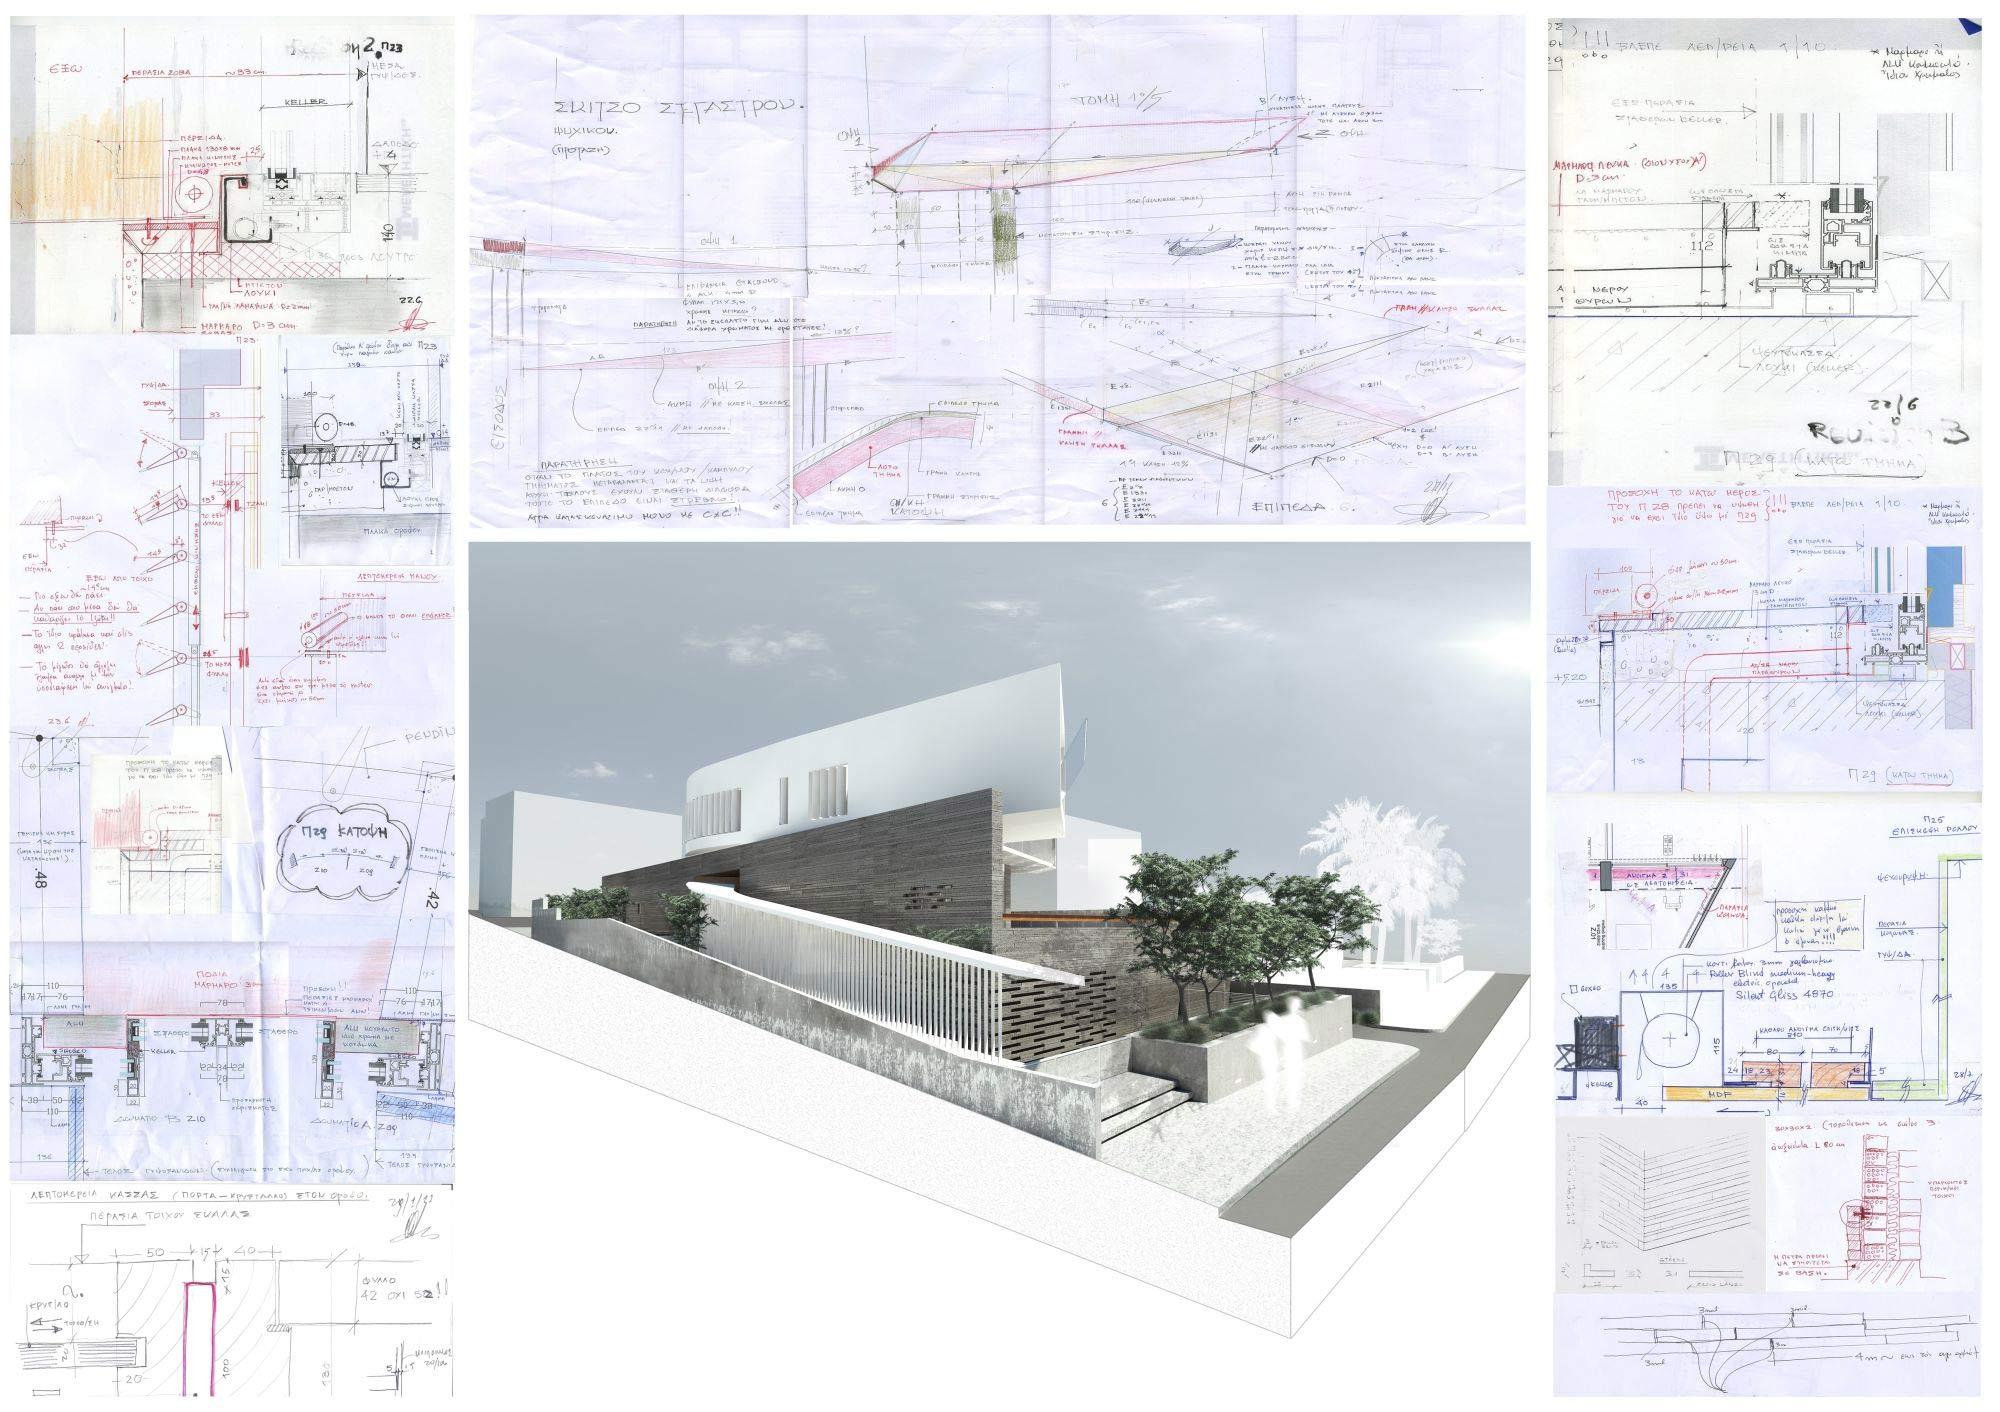 Plans, Psychiko House, Athens by Divercity Architects